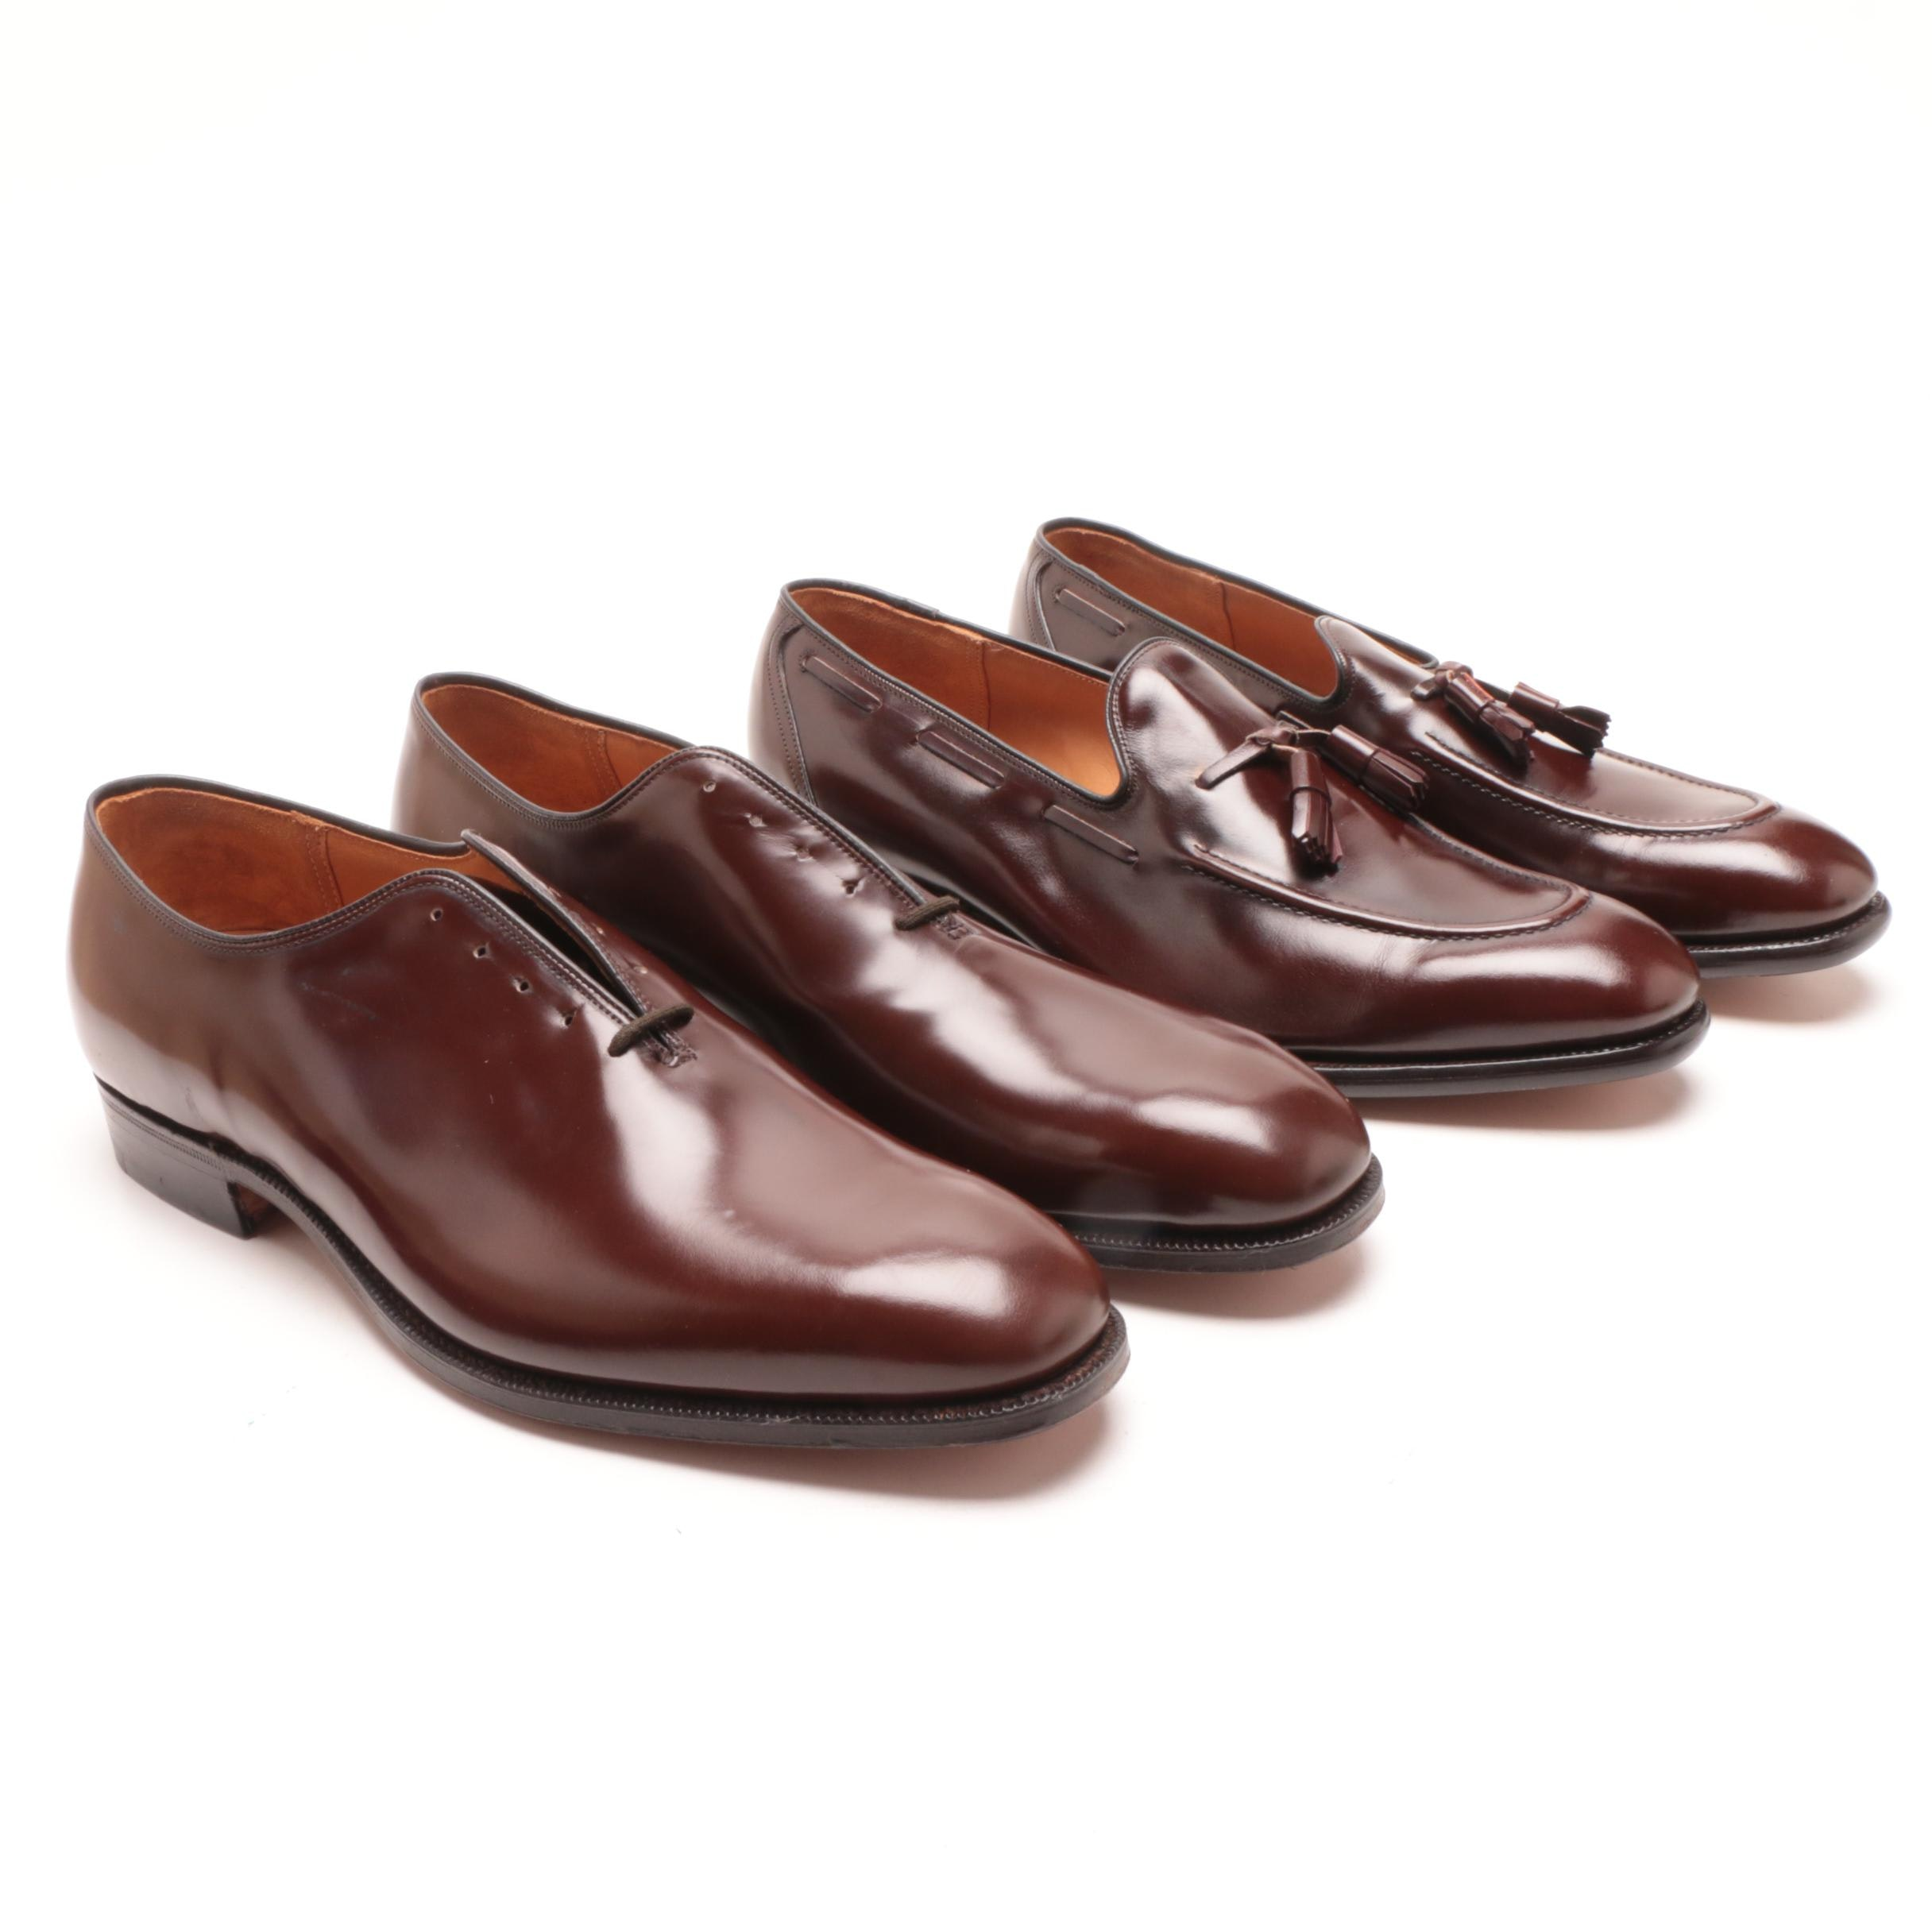 Men's Church's Custom Grade Brown Leather Oxfords and Loafers